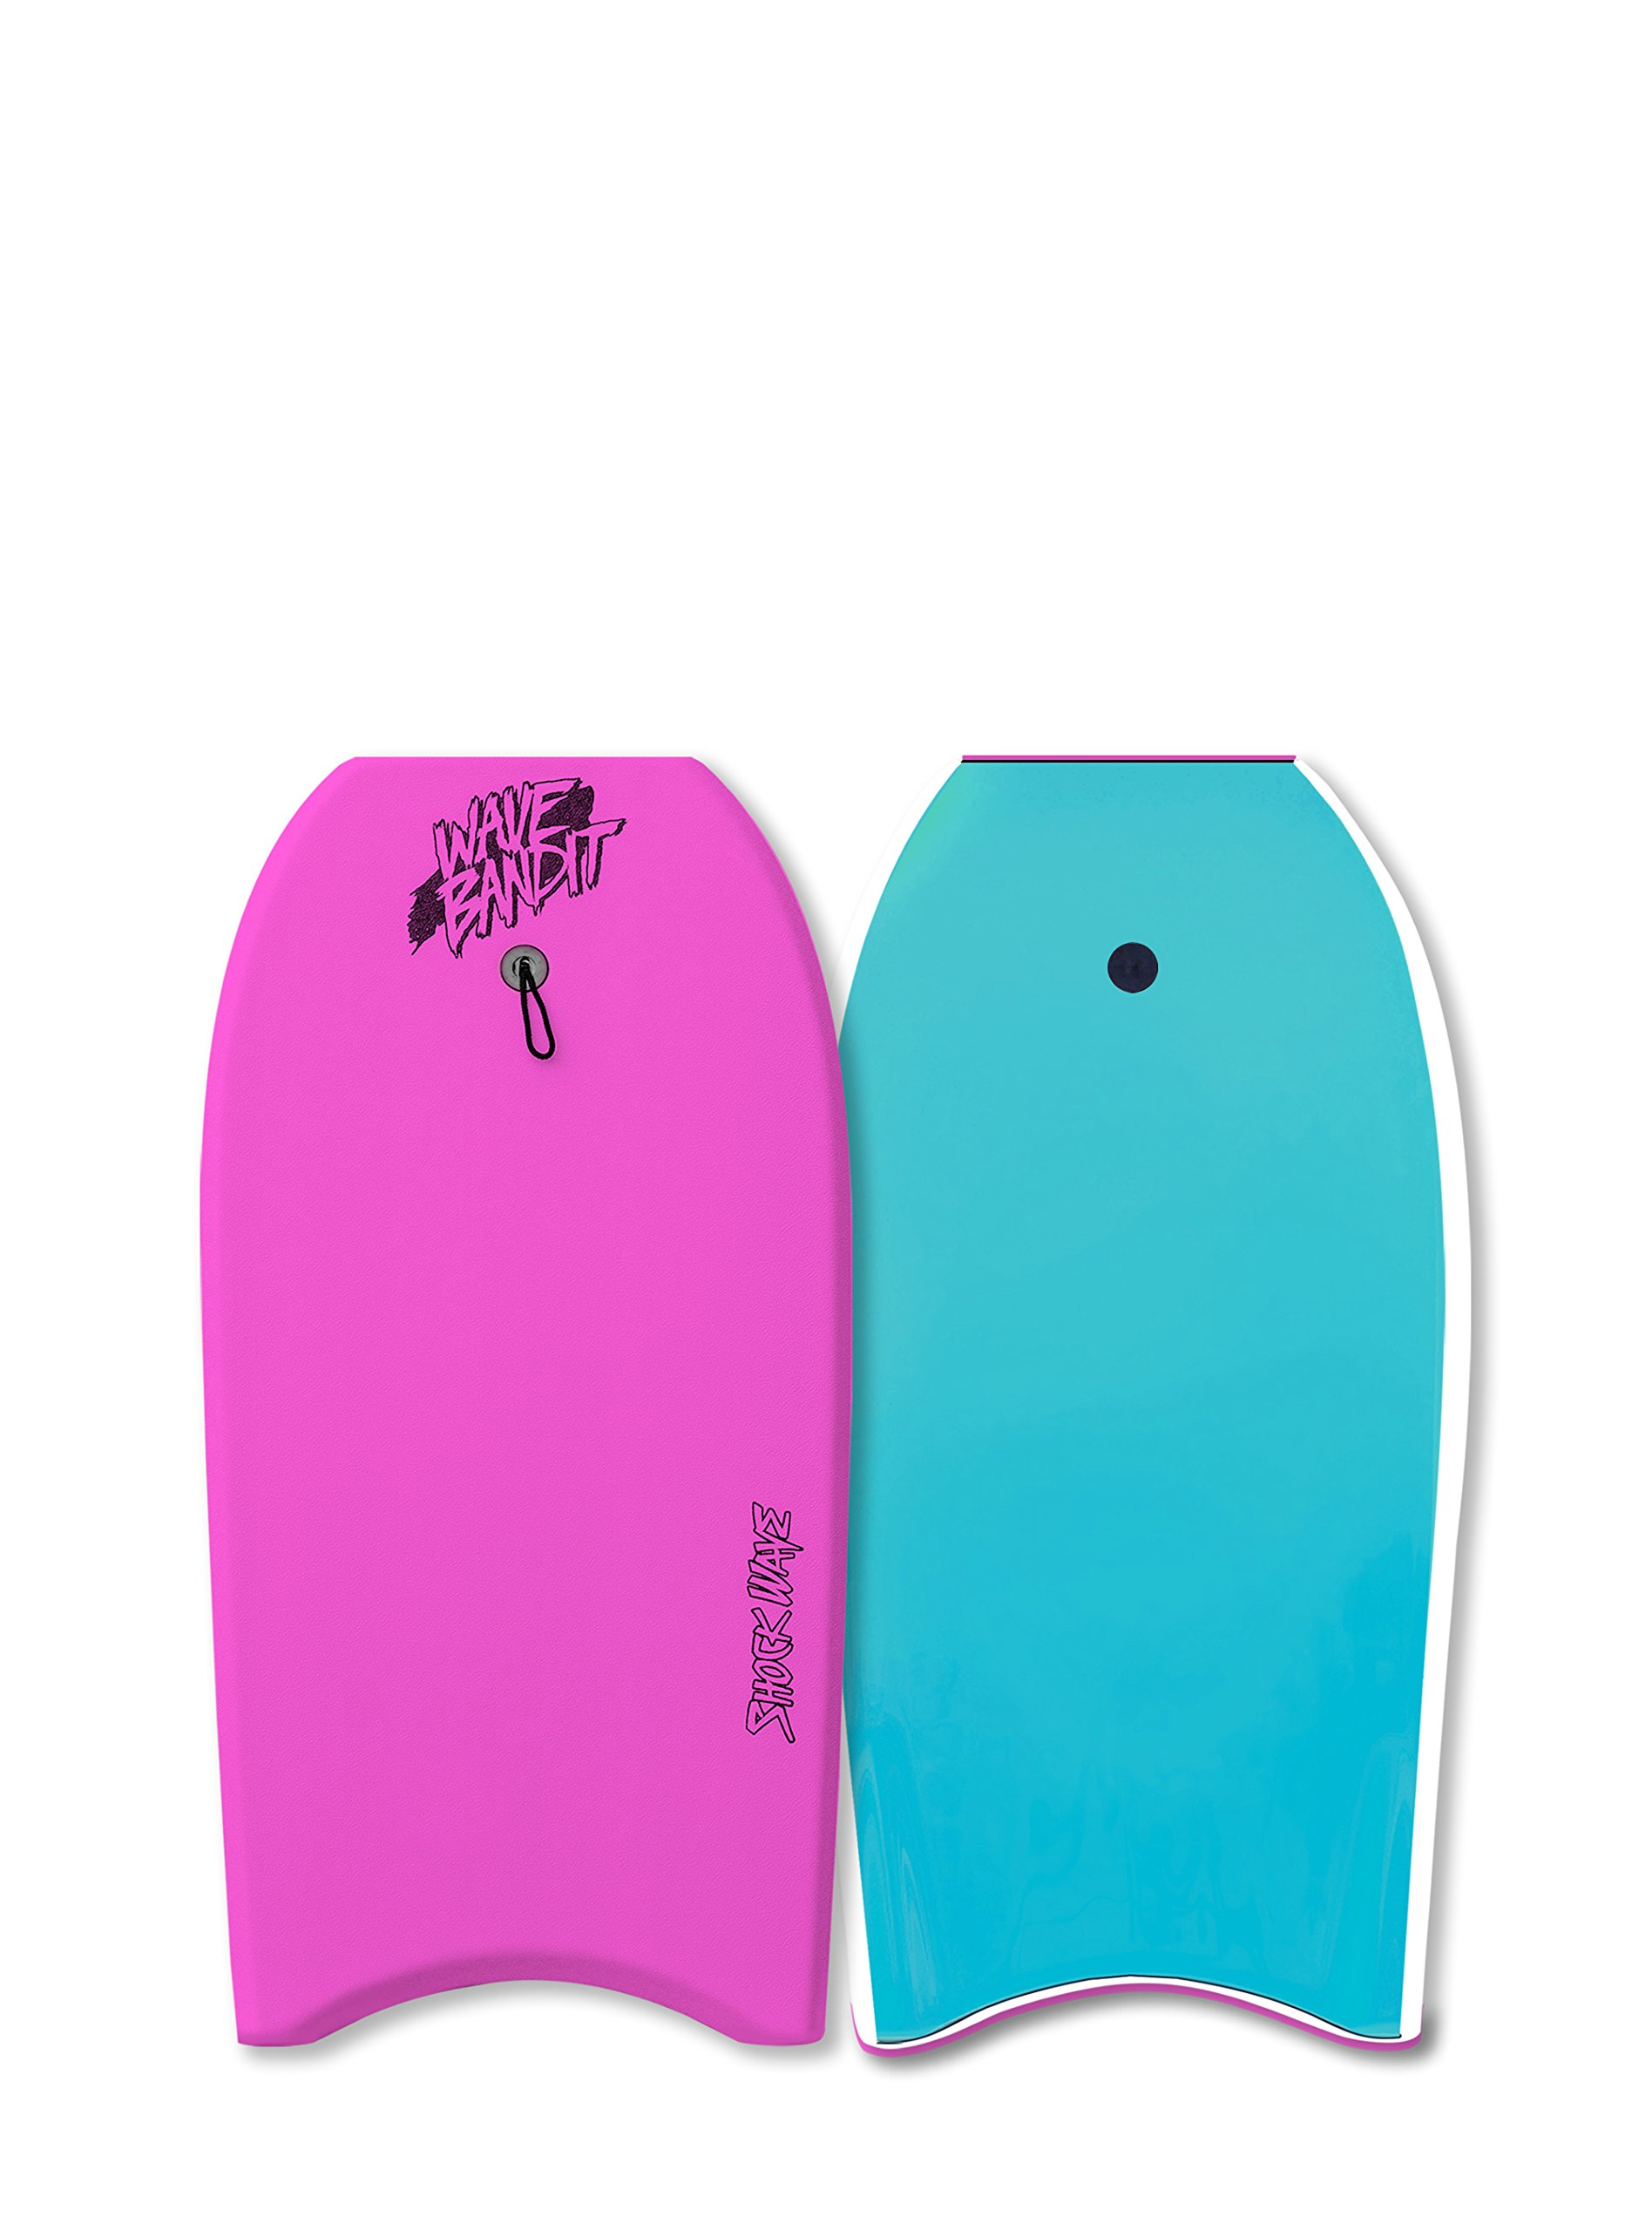 Catch Surf Wave Bandit Shockwave 36'' Body Board, Neon Pink by Catch Surf